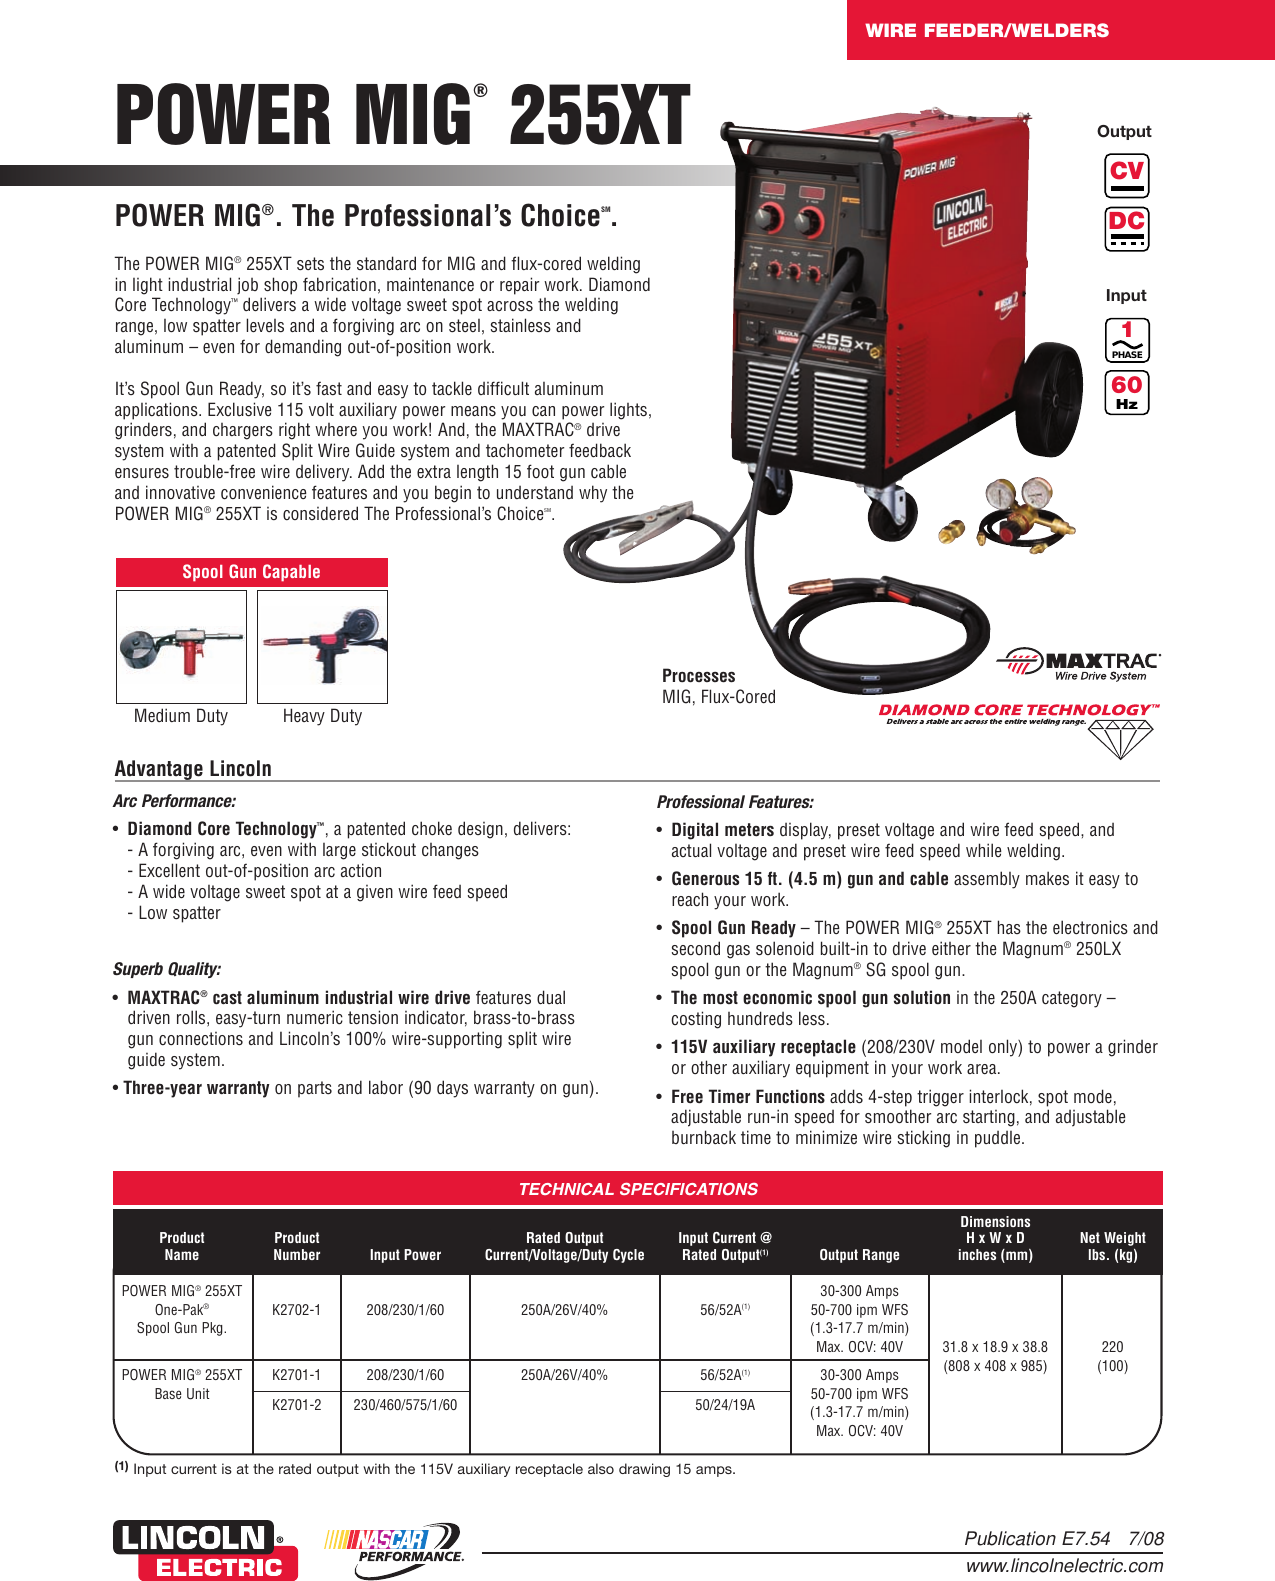 Lincoln Electric Power Mig 255xt Users Manual Wire Feeder Welders Image 50 Amp Welder Plug Wiring Download